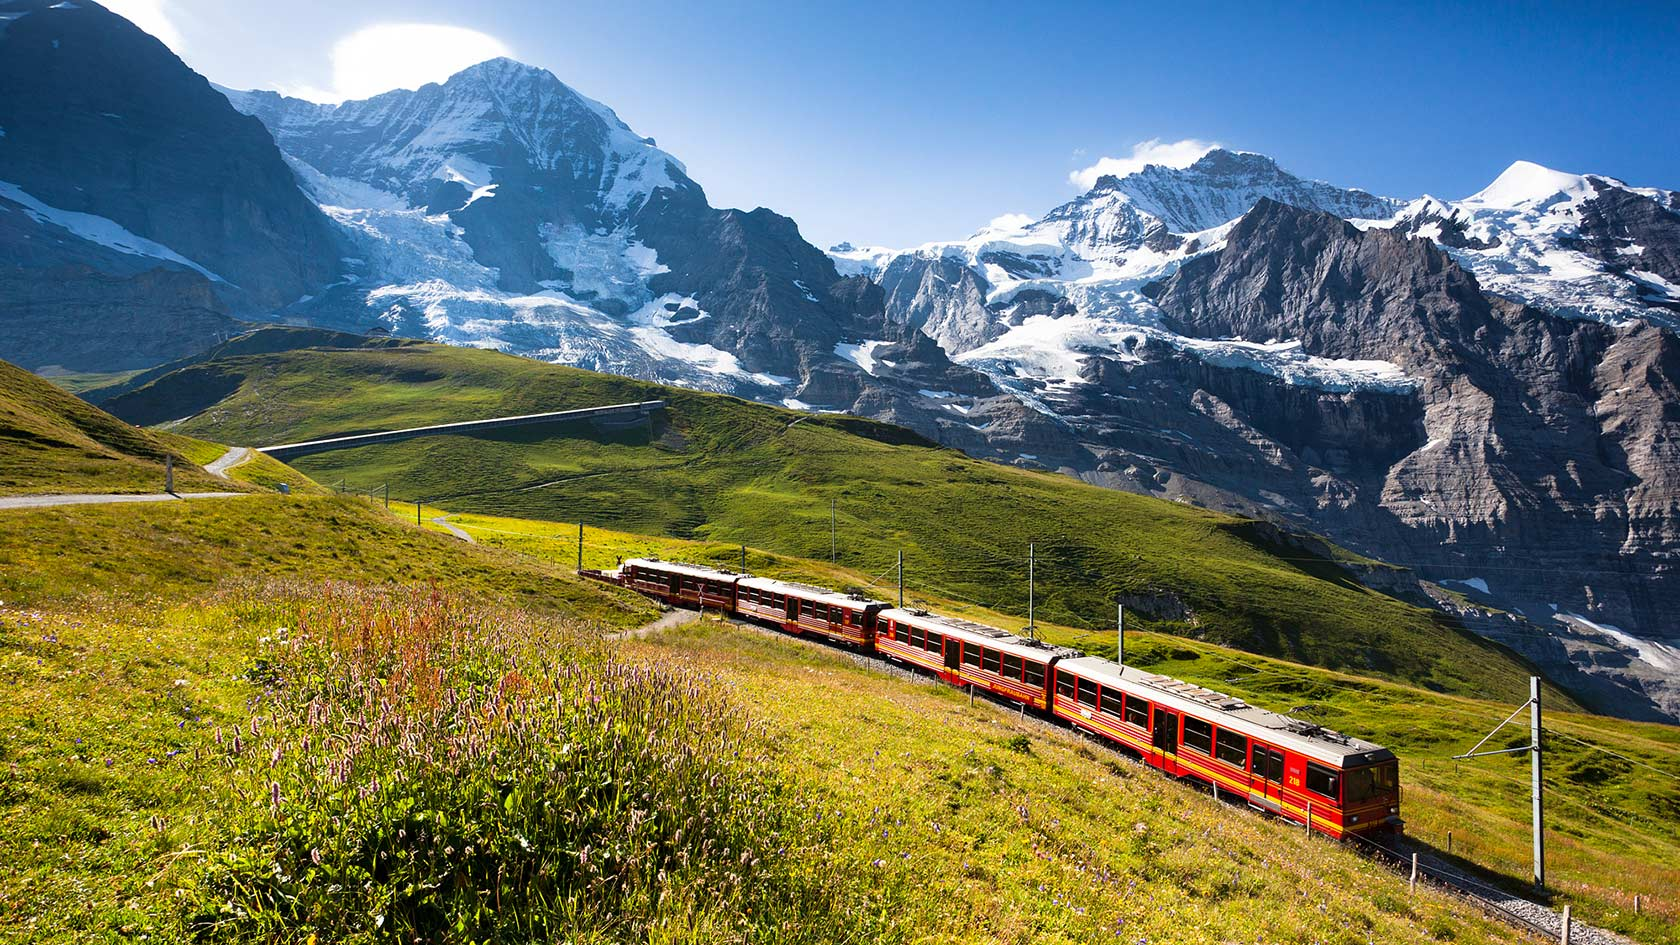 Hd switzerland wallpapers full hd pictures - Switzerland wallpaper full hd ...